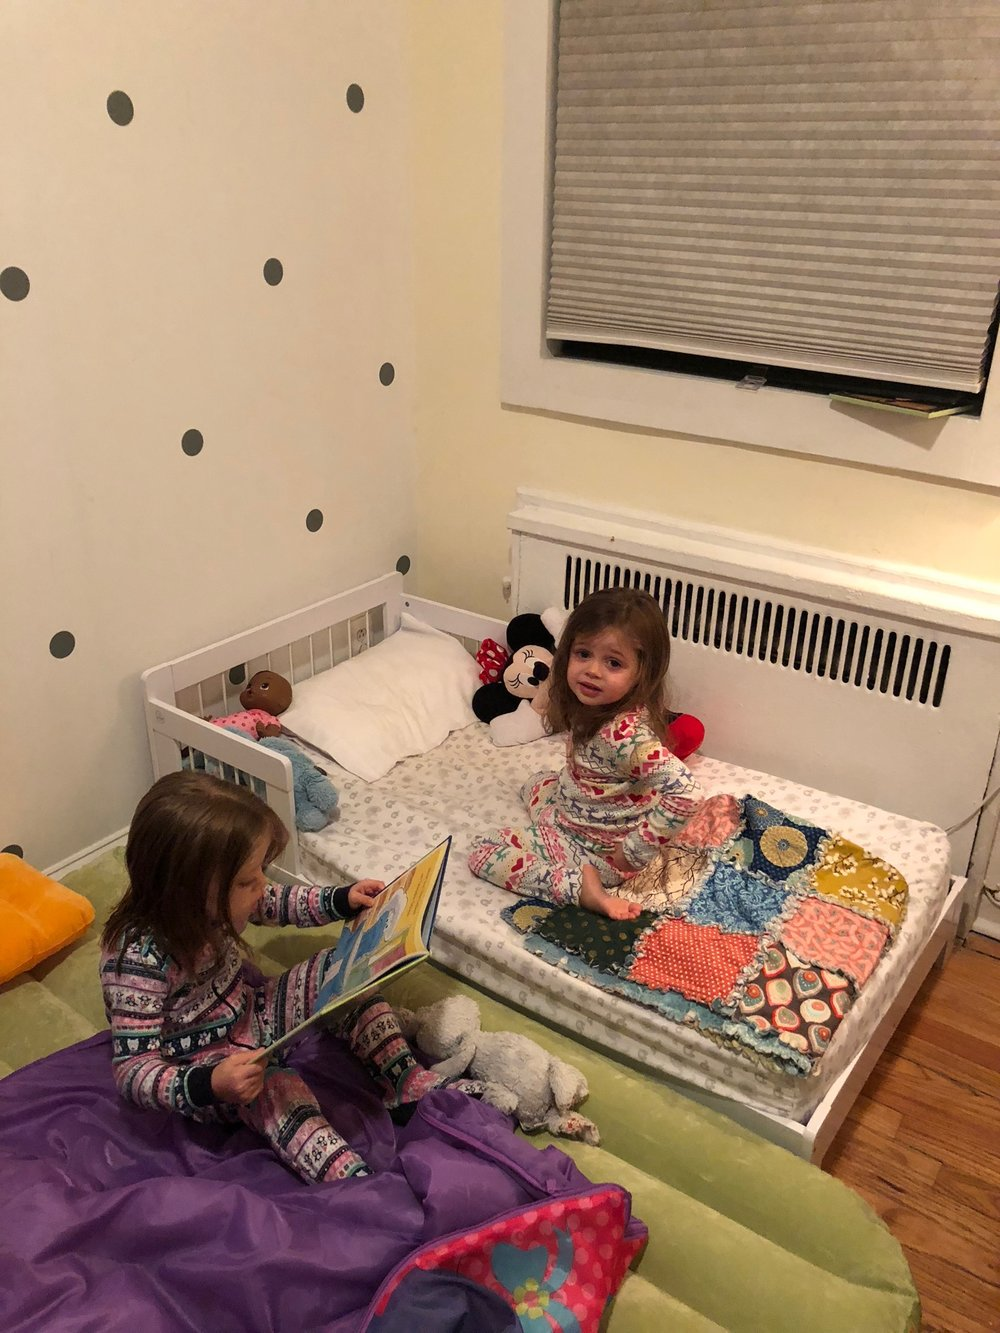 Meanwhile, Lucie and Elle were gettting ready for bed with a story.